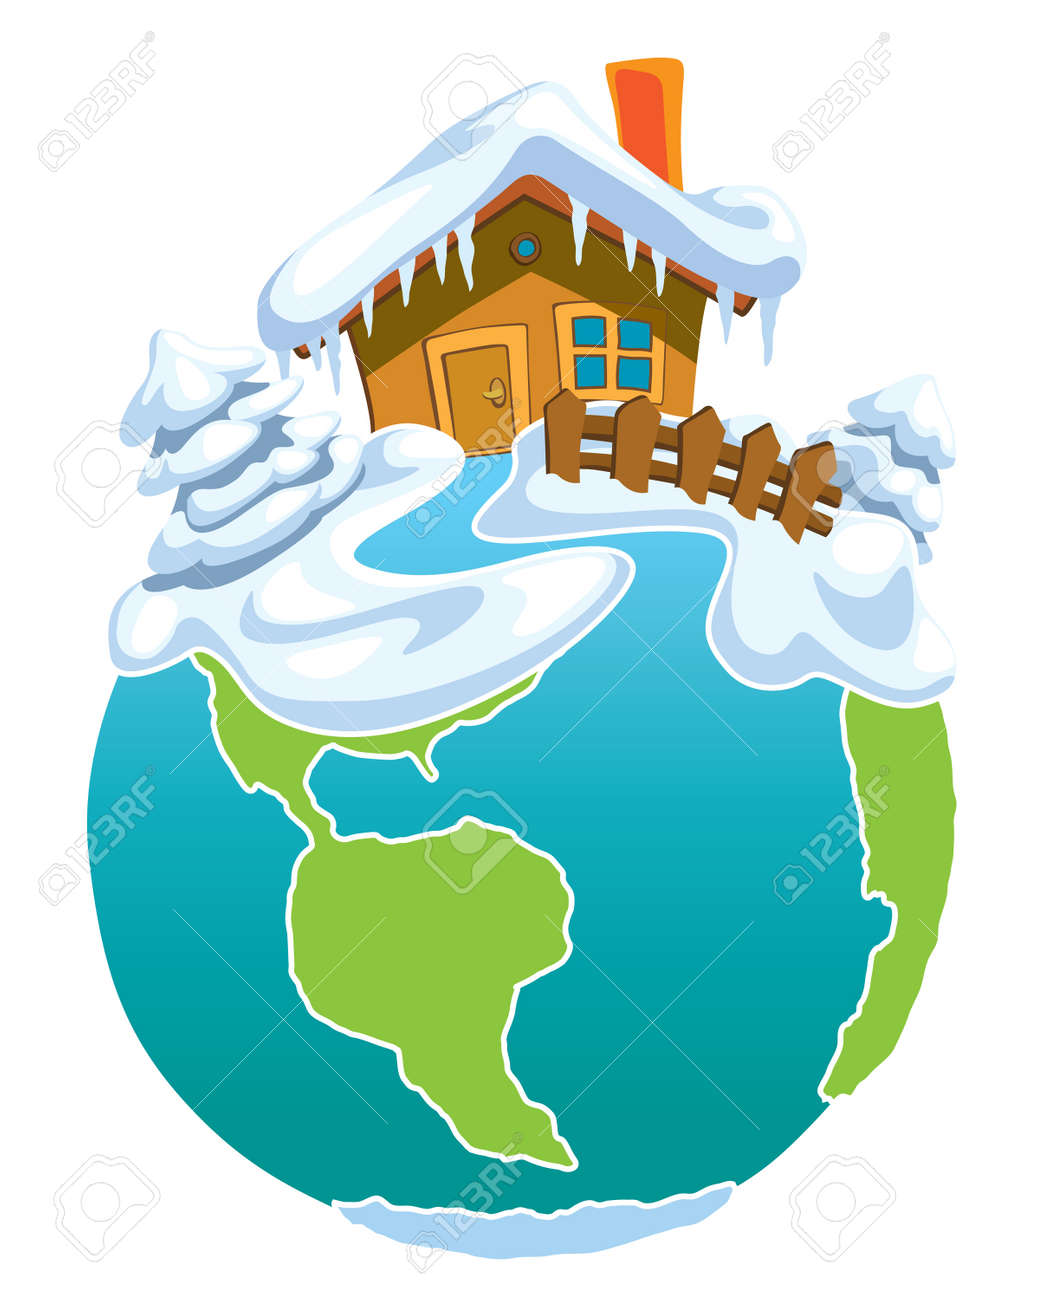 north pole globe with santa claus house royalty free cliparts rh 123rf com north pole clipart free north pole clipart images